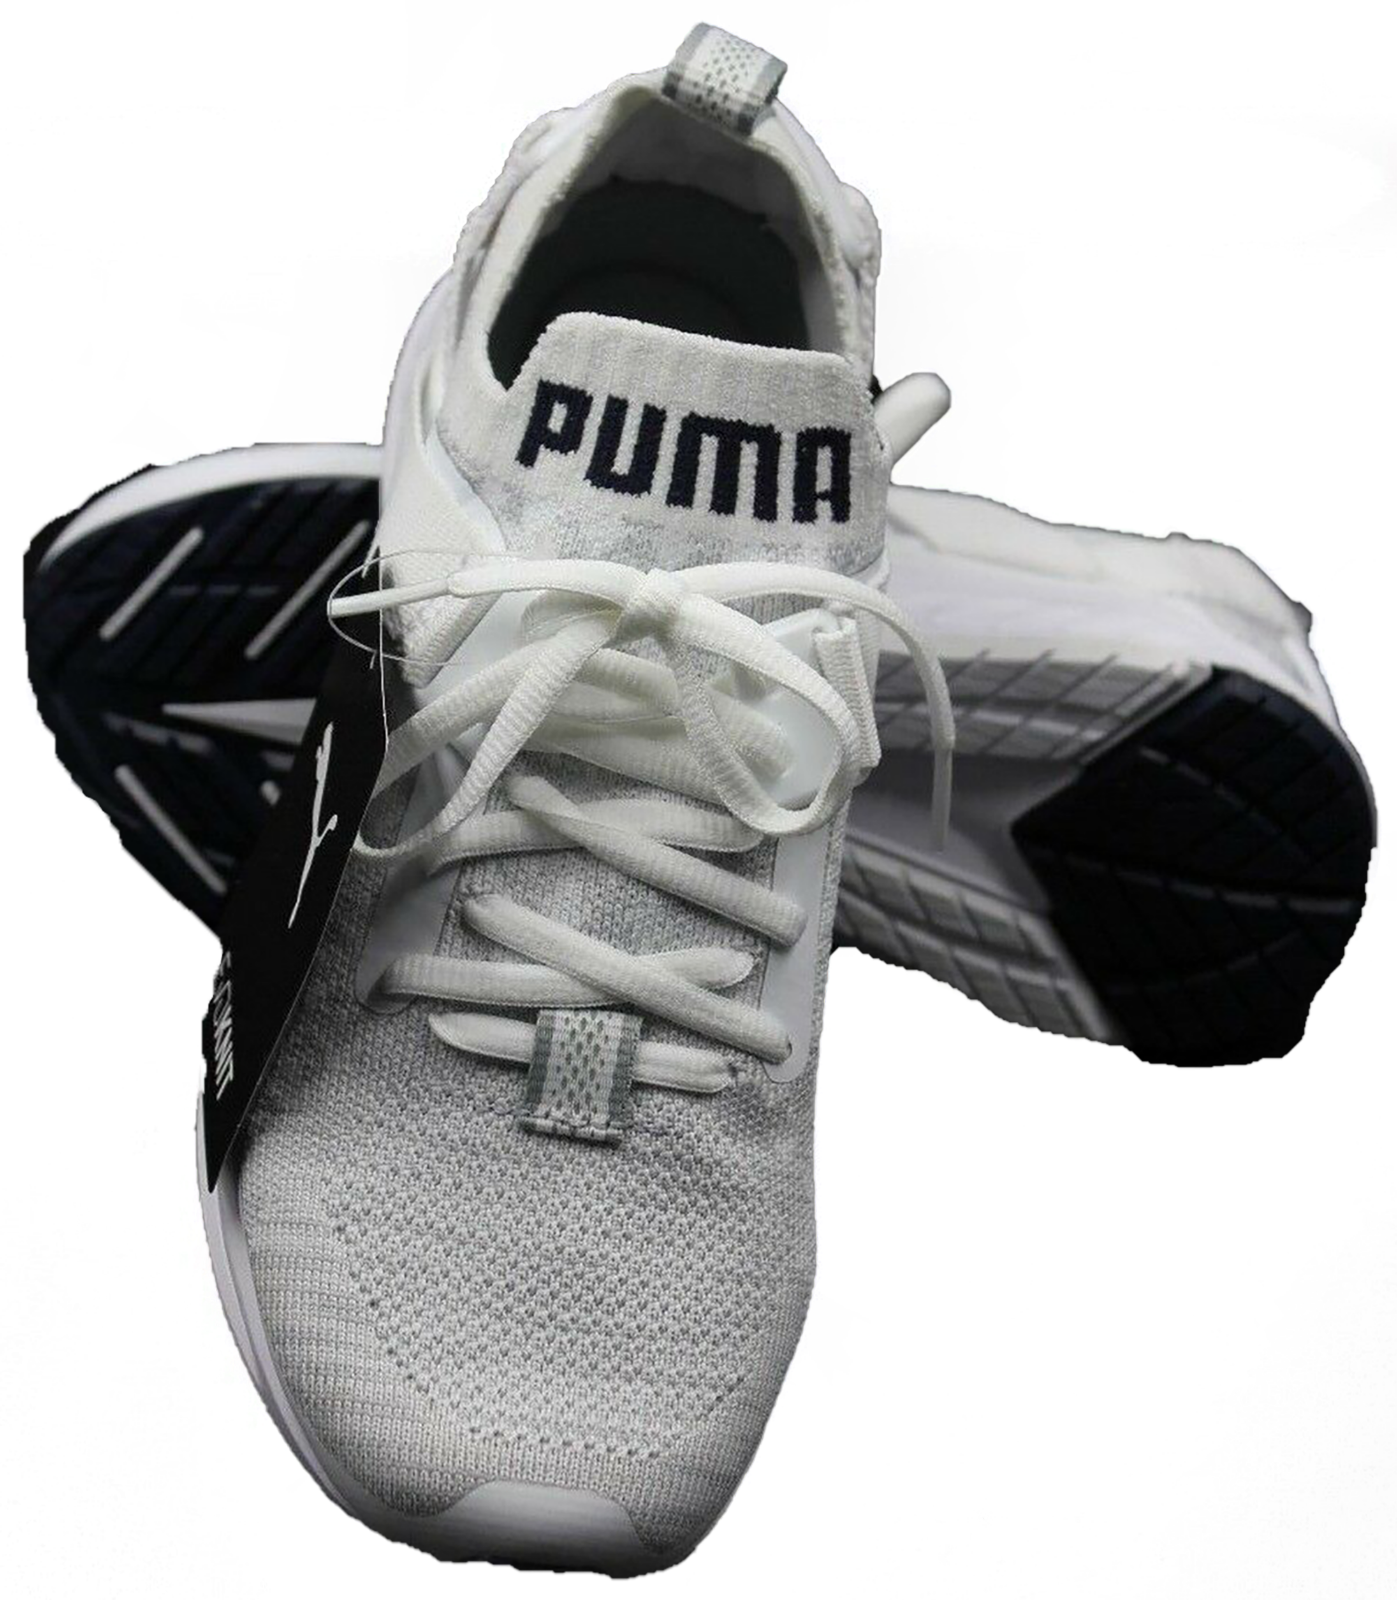 PUMA Ignite evoKnit Lo White-Vaporous Grey - Peacoat - Women's Size 5.5 - NEW